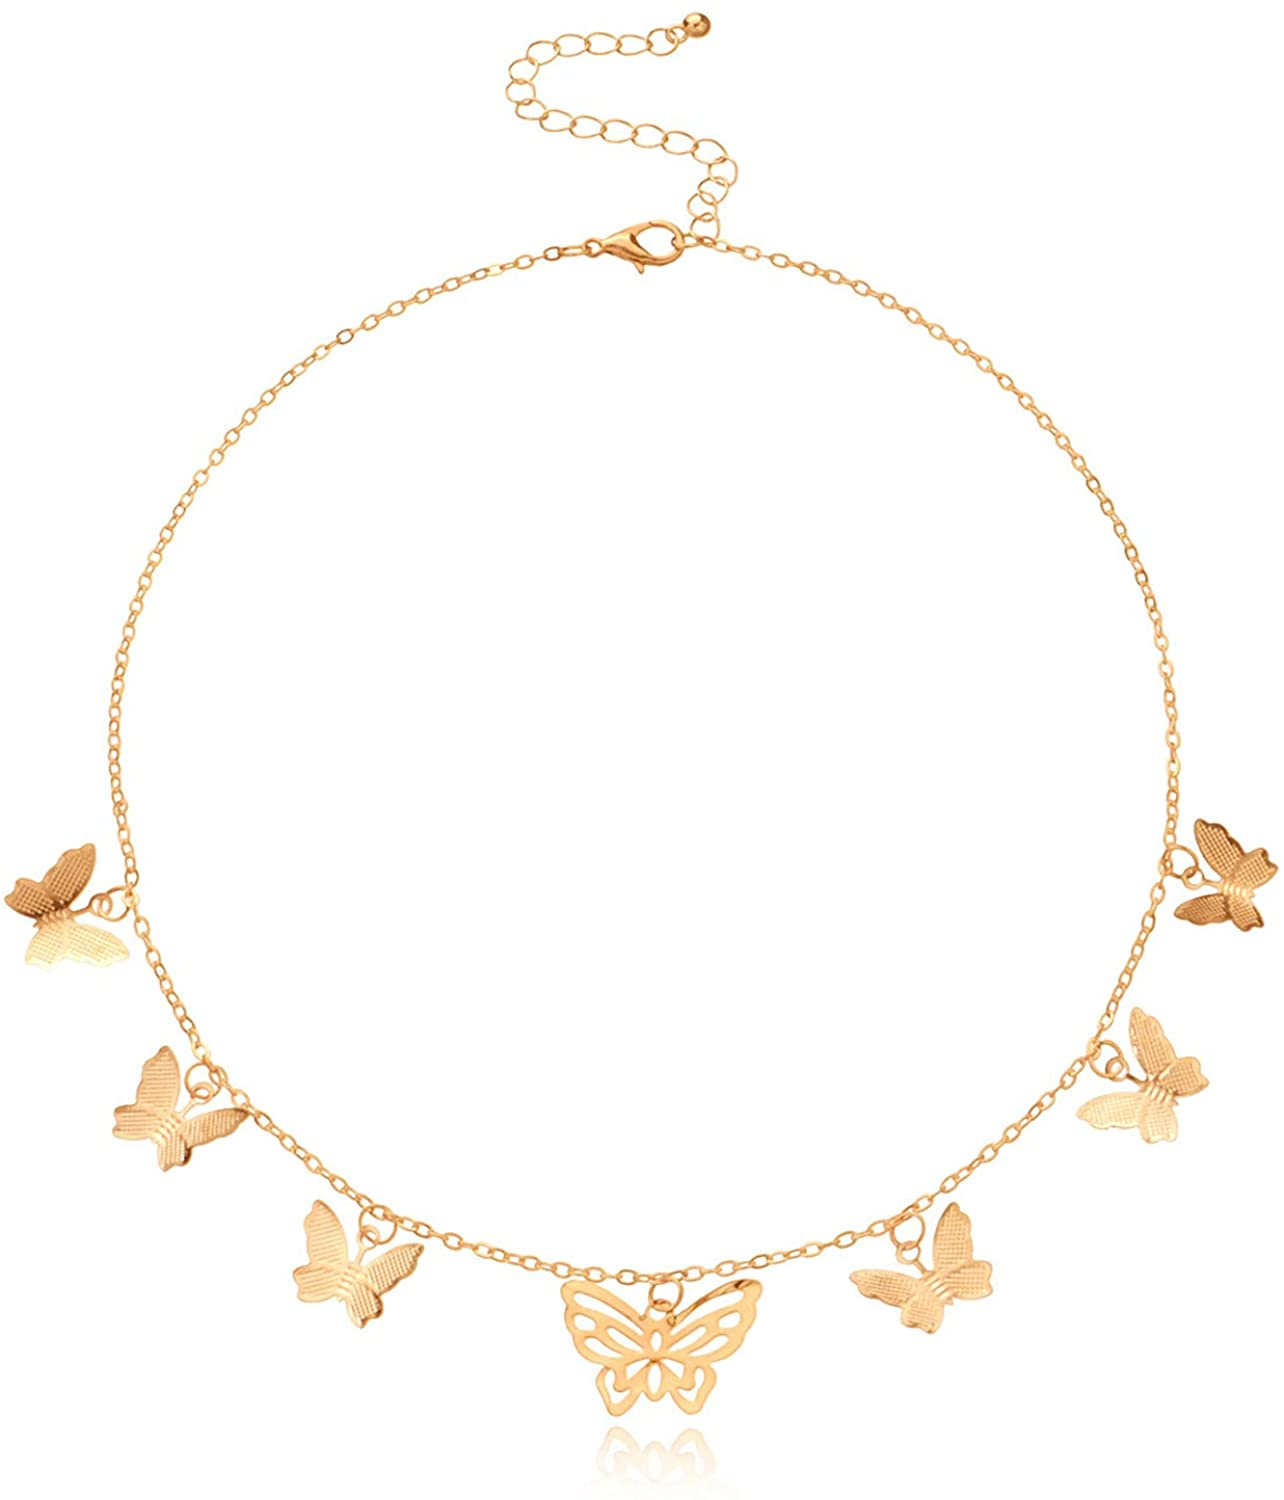 kelistom Butterfly Necklace for Women Girl, Gold Plated Butterfly Layered Chain Choker Pendant Necklace